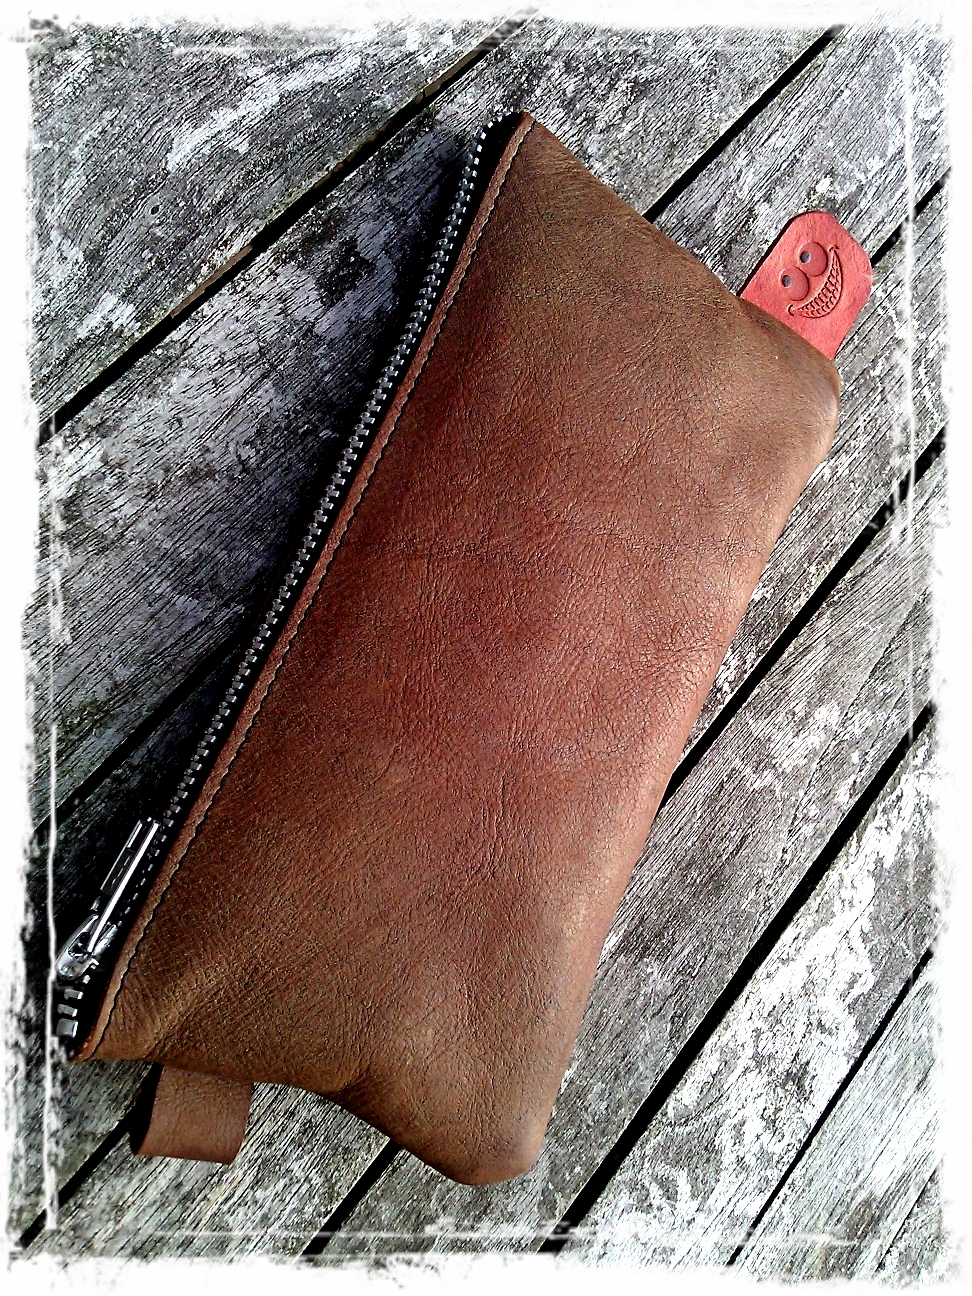 promo code f1cde d7f03 Still using pencils or have you gone digital? Handmade leather etui ...